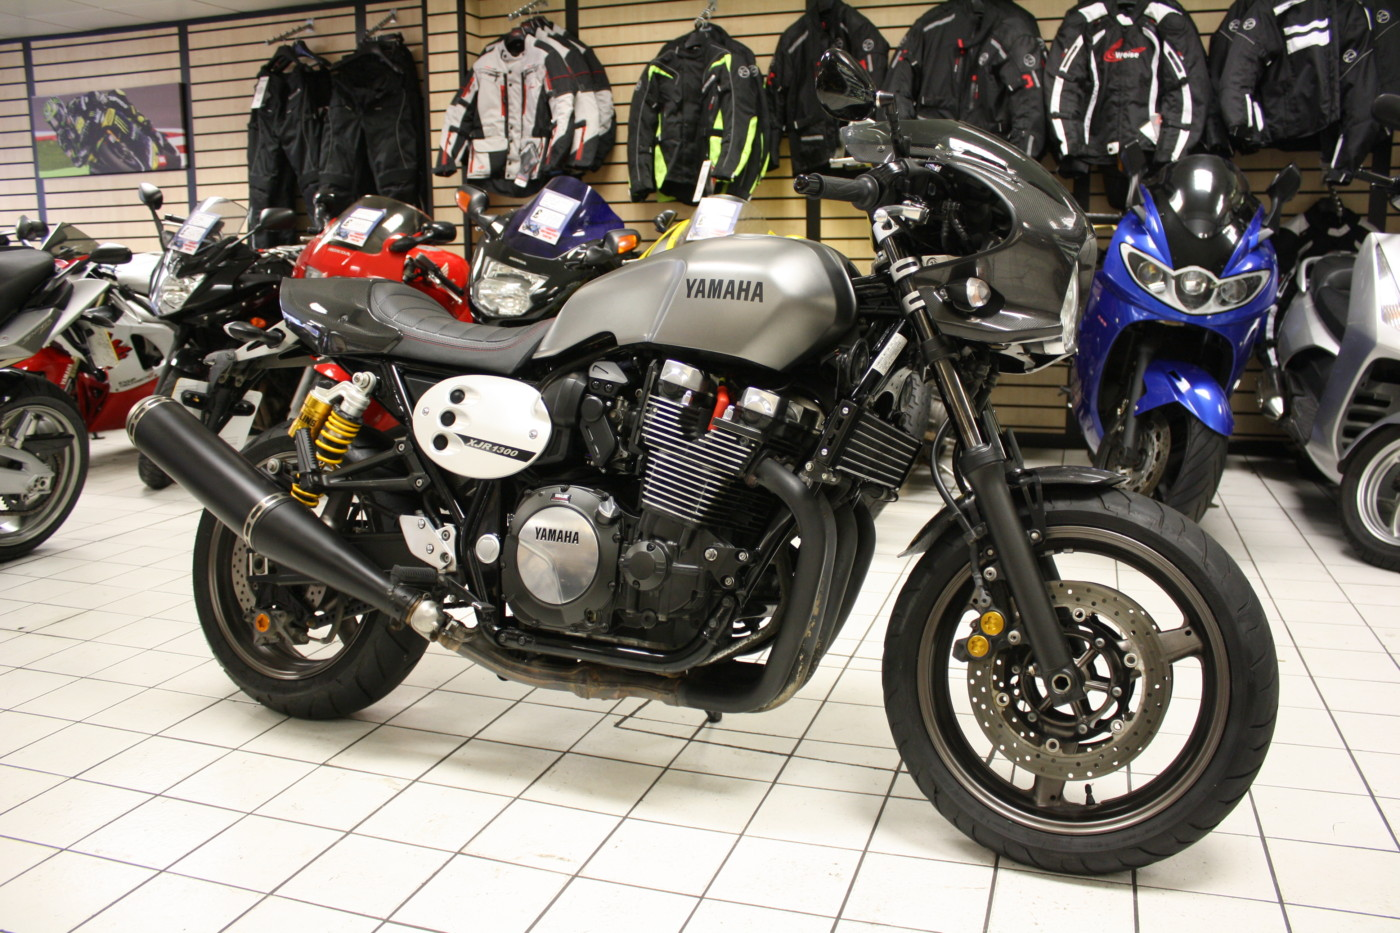 Yamaha XJR1300 1300cc Racer 60th Anniversary Naked